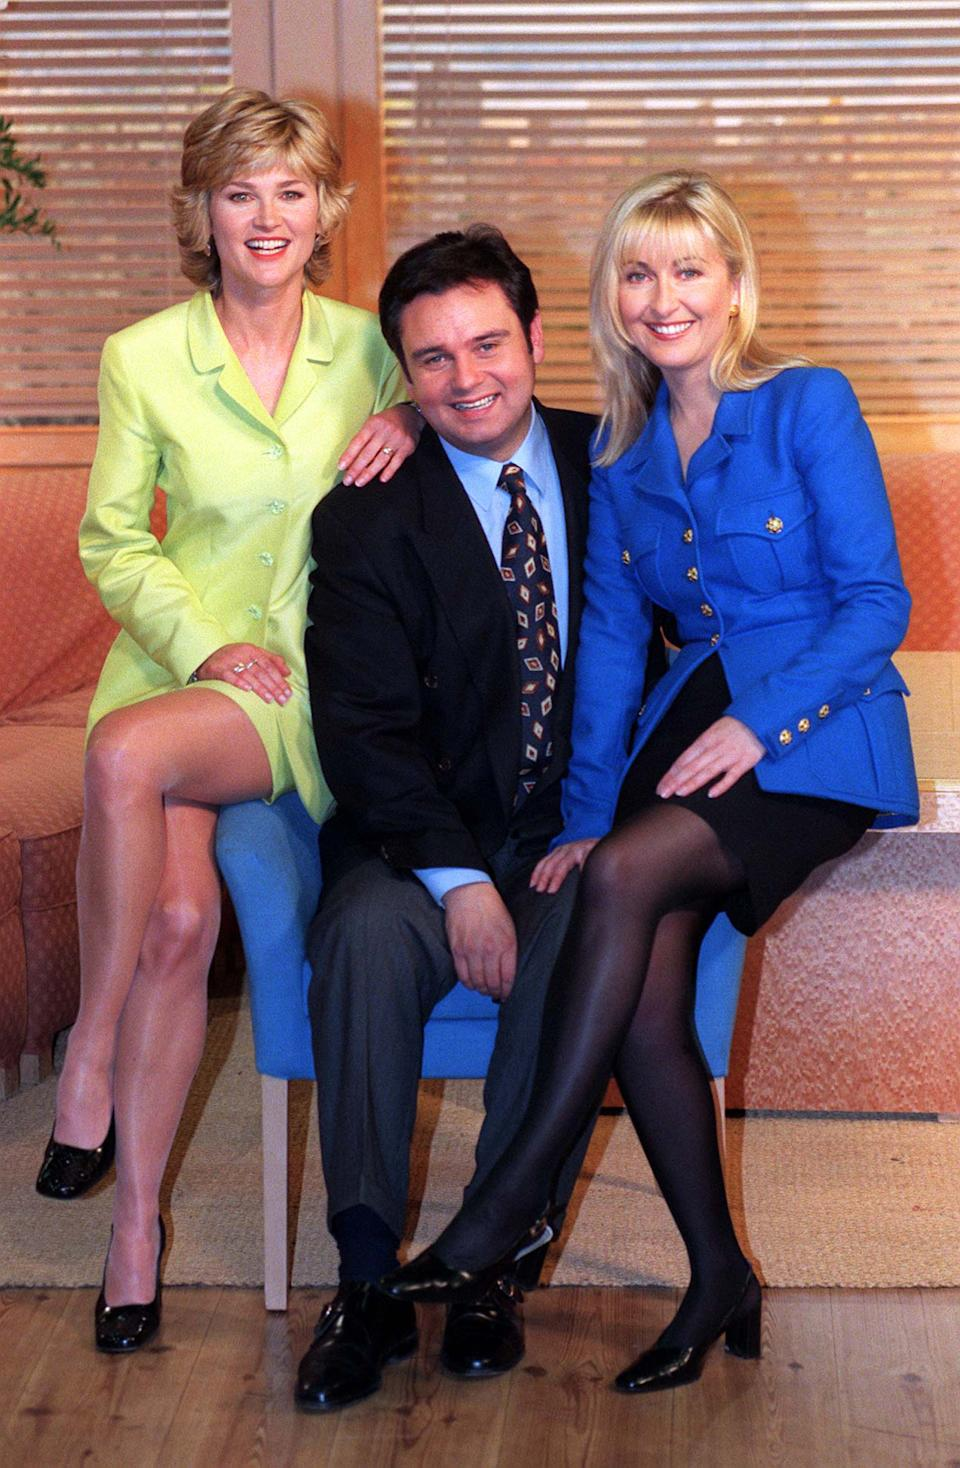 Anthea Turner (left) with Eamonn Holmes and Fiona Phillips.  (Photo by Neil Munns - PA Images/PA Images via Getty Images)